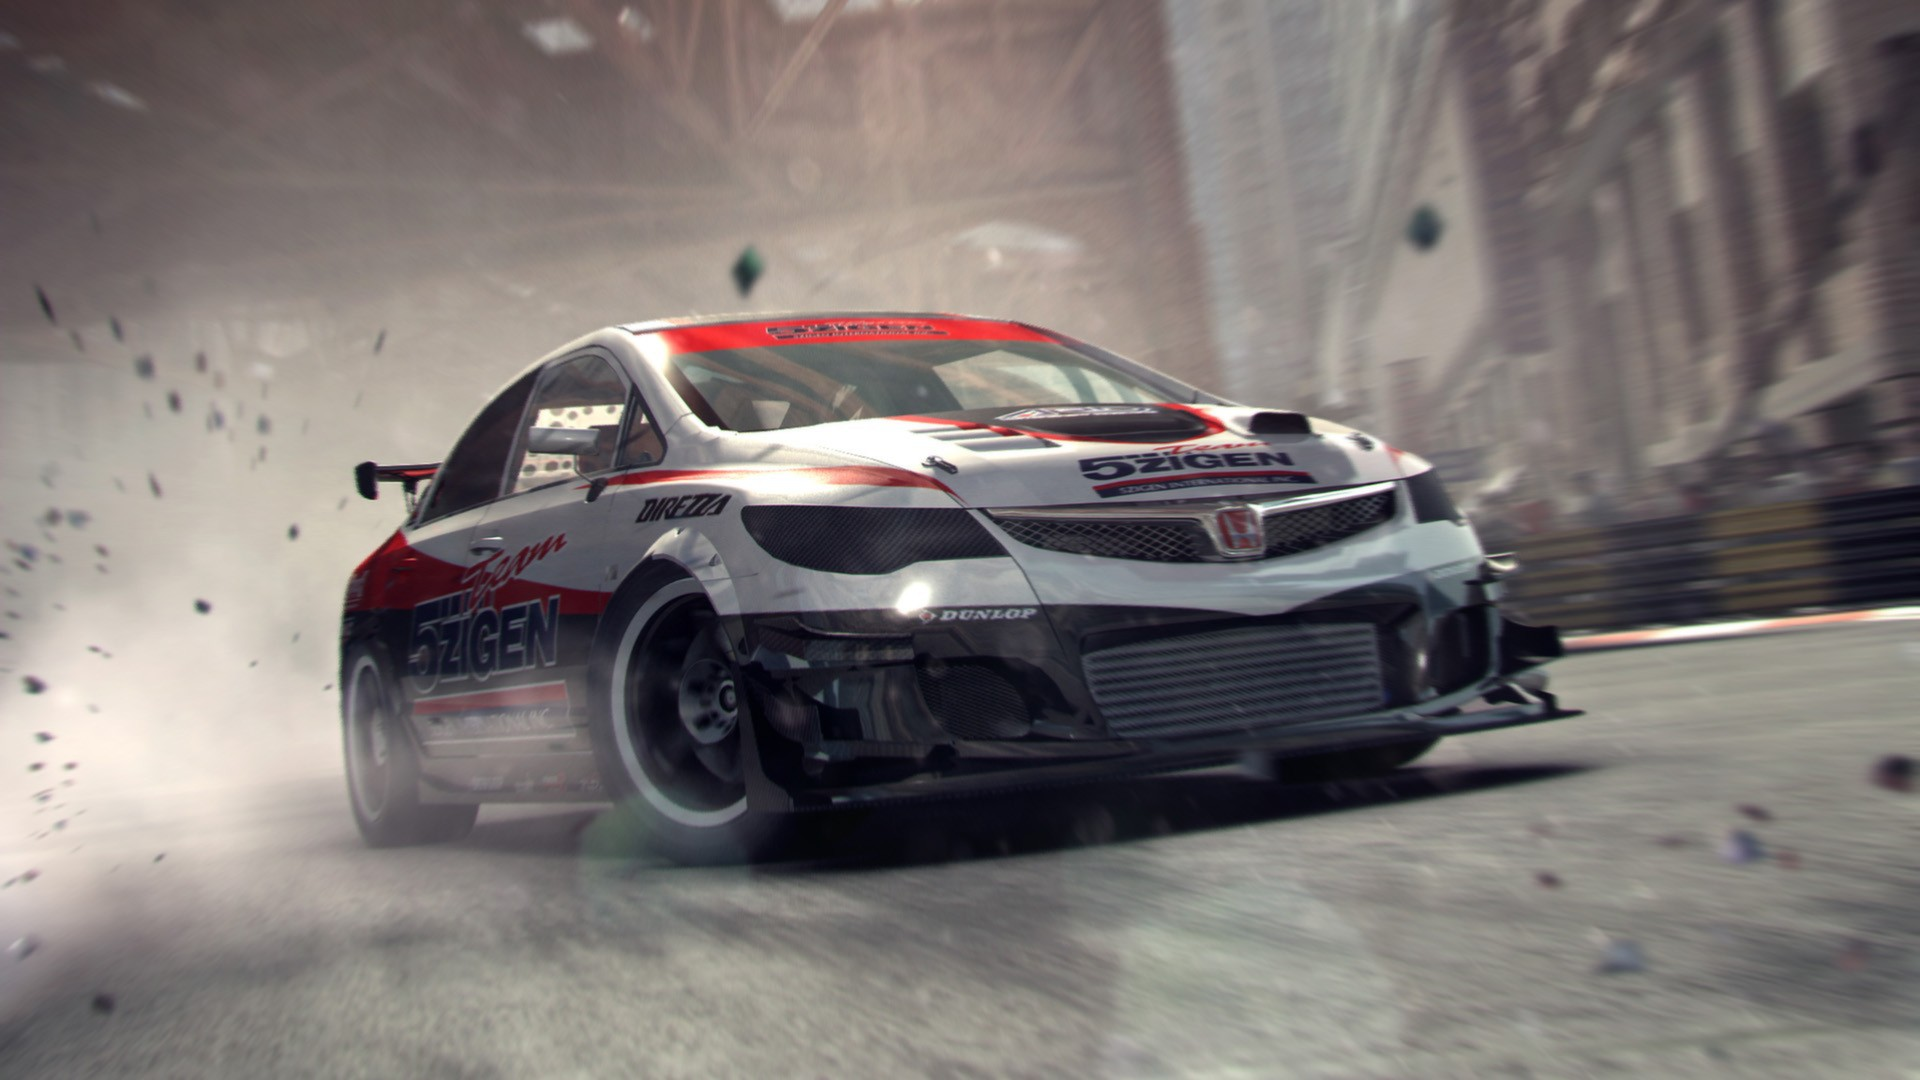 Image of a moment from the game Grid 2